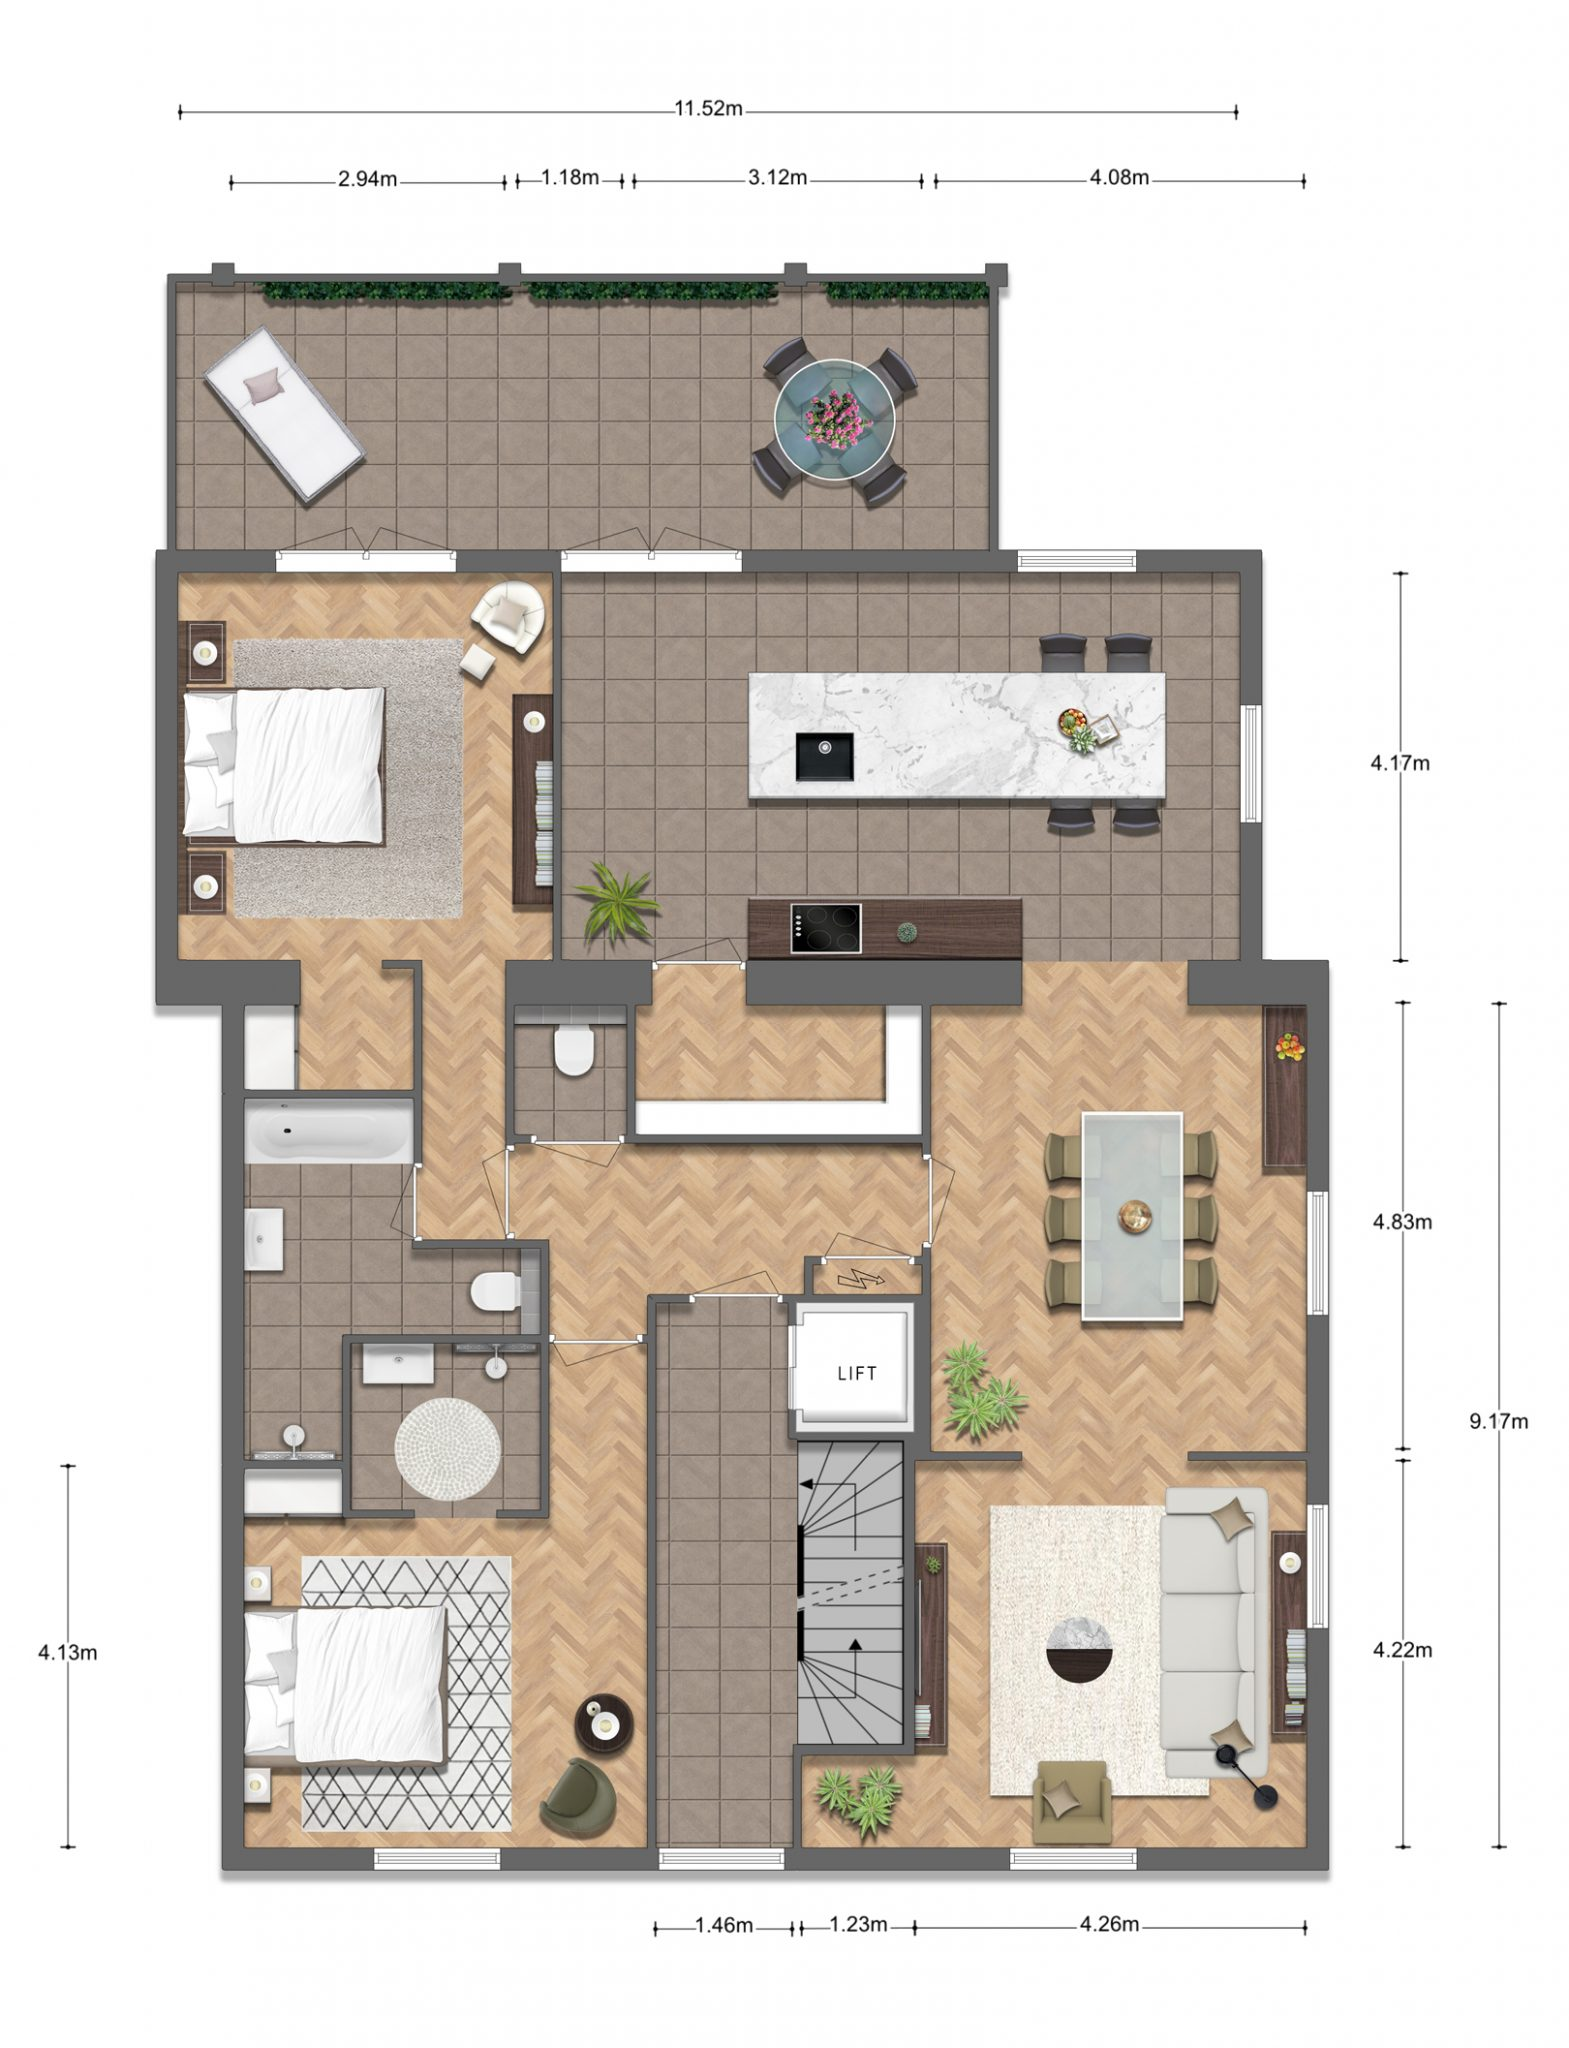 4 Appartement FINAL v2 1 - Impressieplattegrond